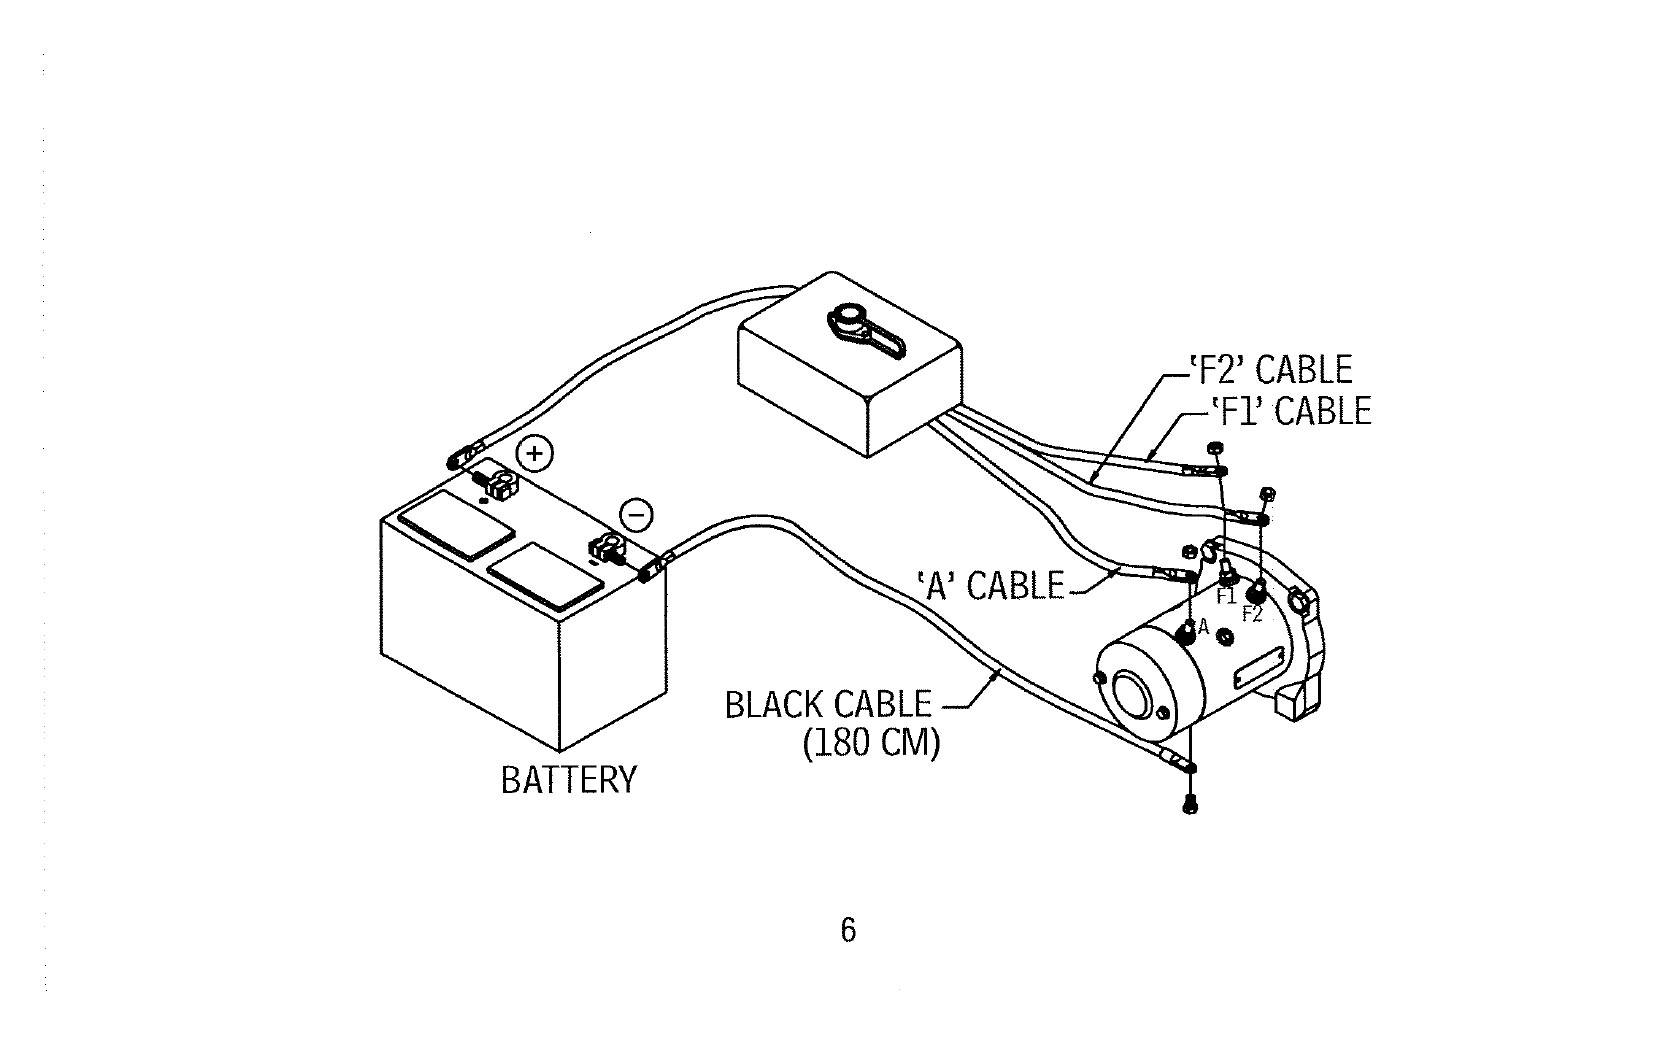 Ramsey Wiring Diagram Winch Wiring Diagram Winch Image Wiring